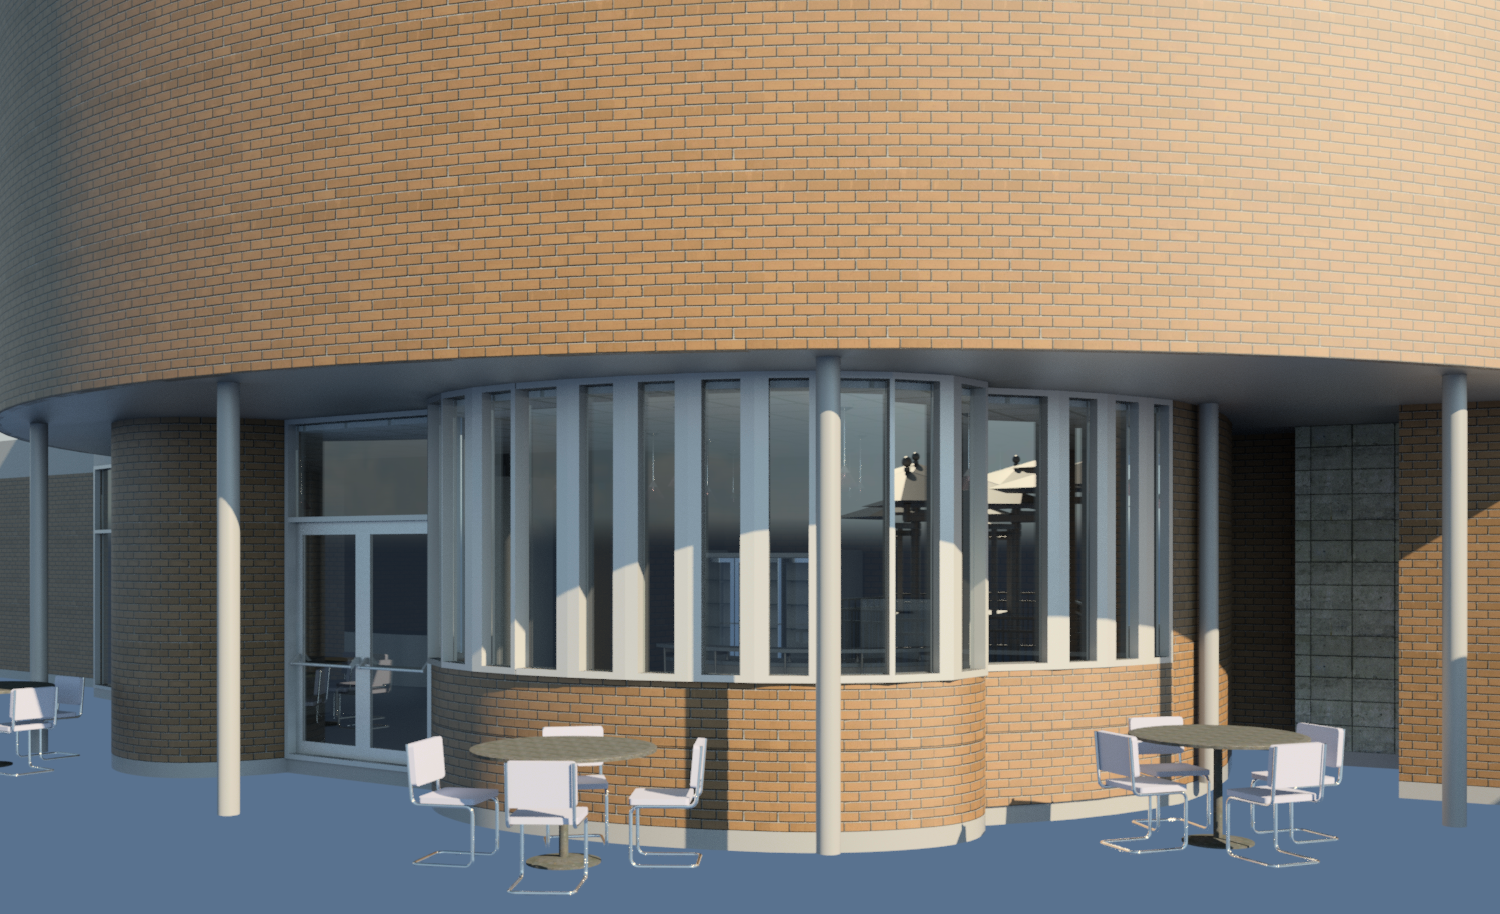 title fitzroy pool exterior cafe perspective jodi miles  title fitzroy pool exterior cafe perspective jodi miles program diploma of